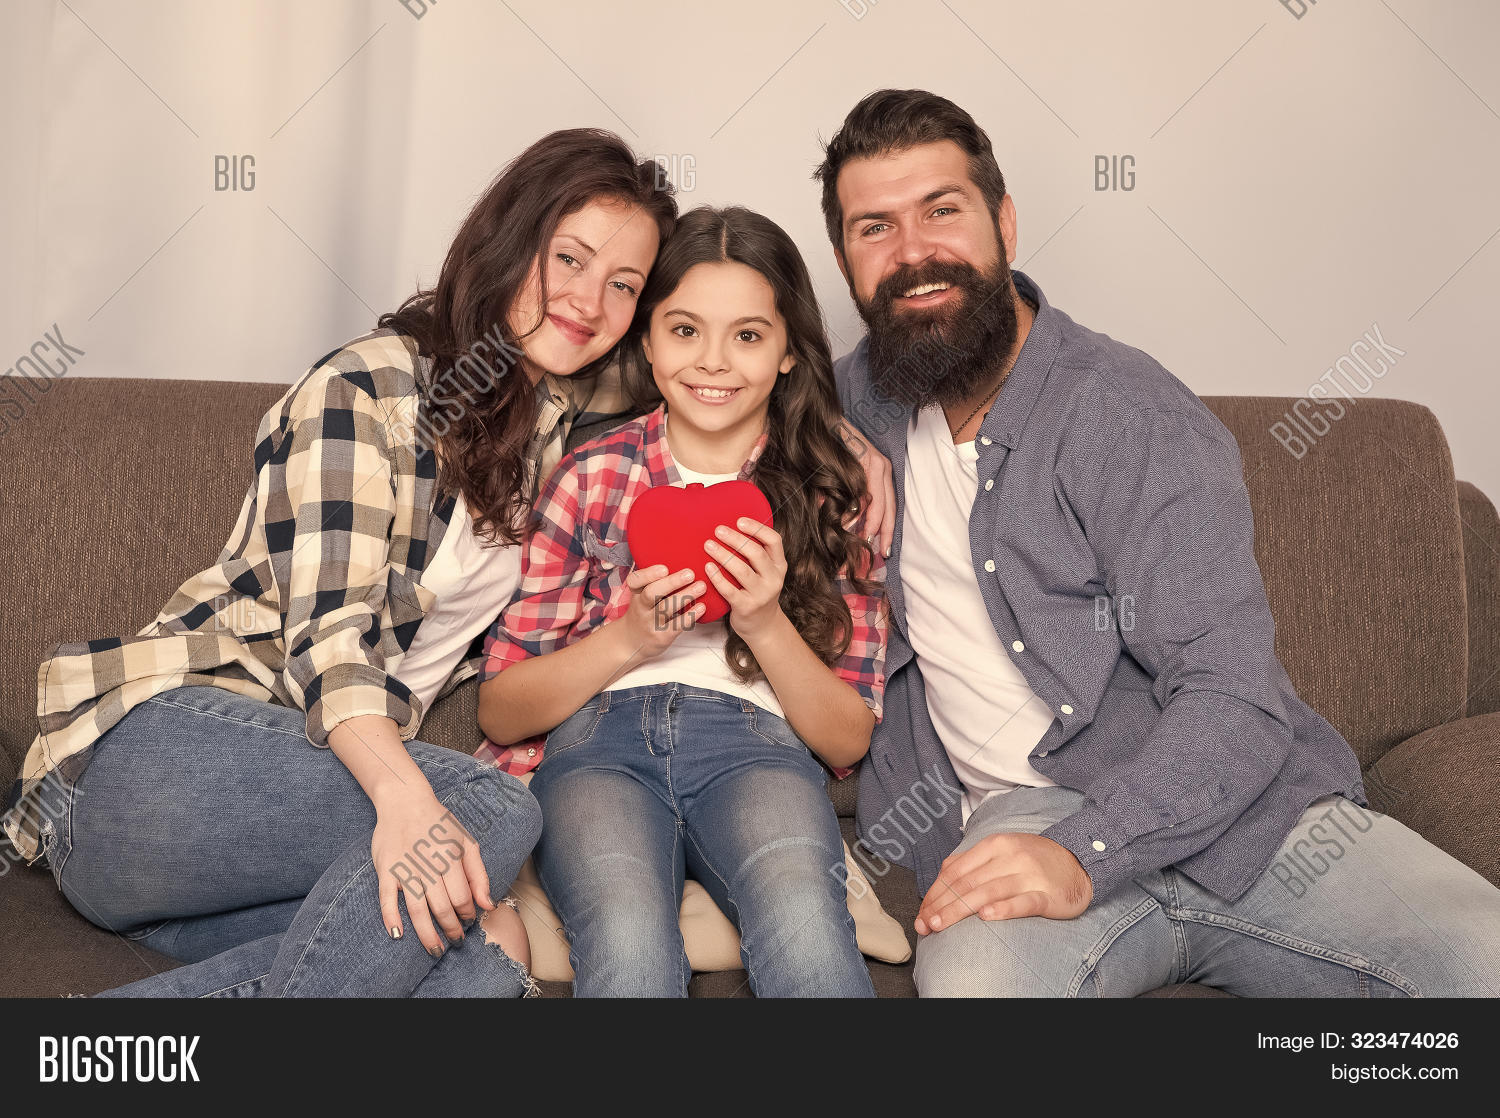 Love My Parents Image Photo Free Trial Bigstock